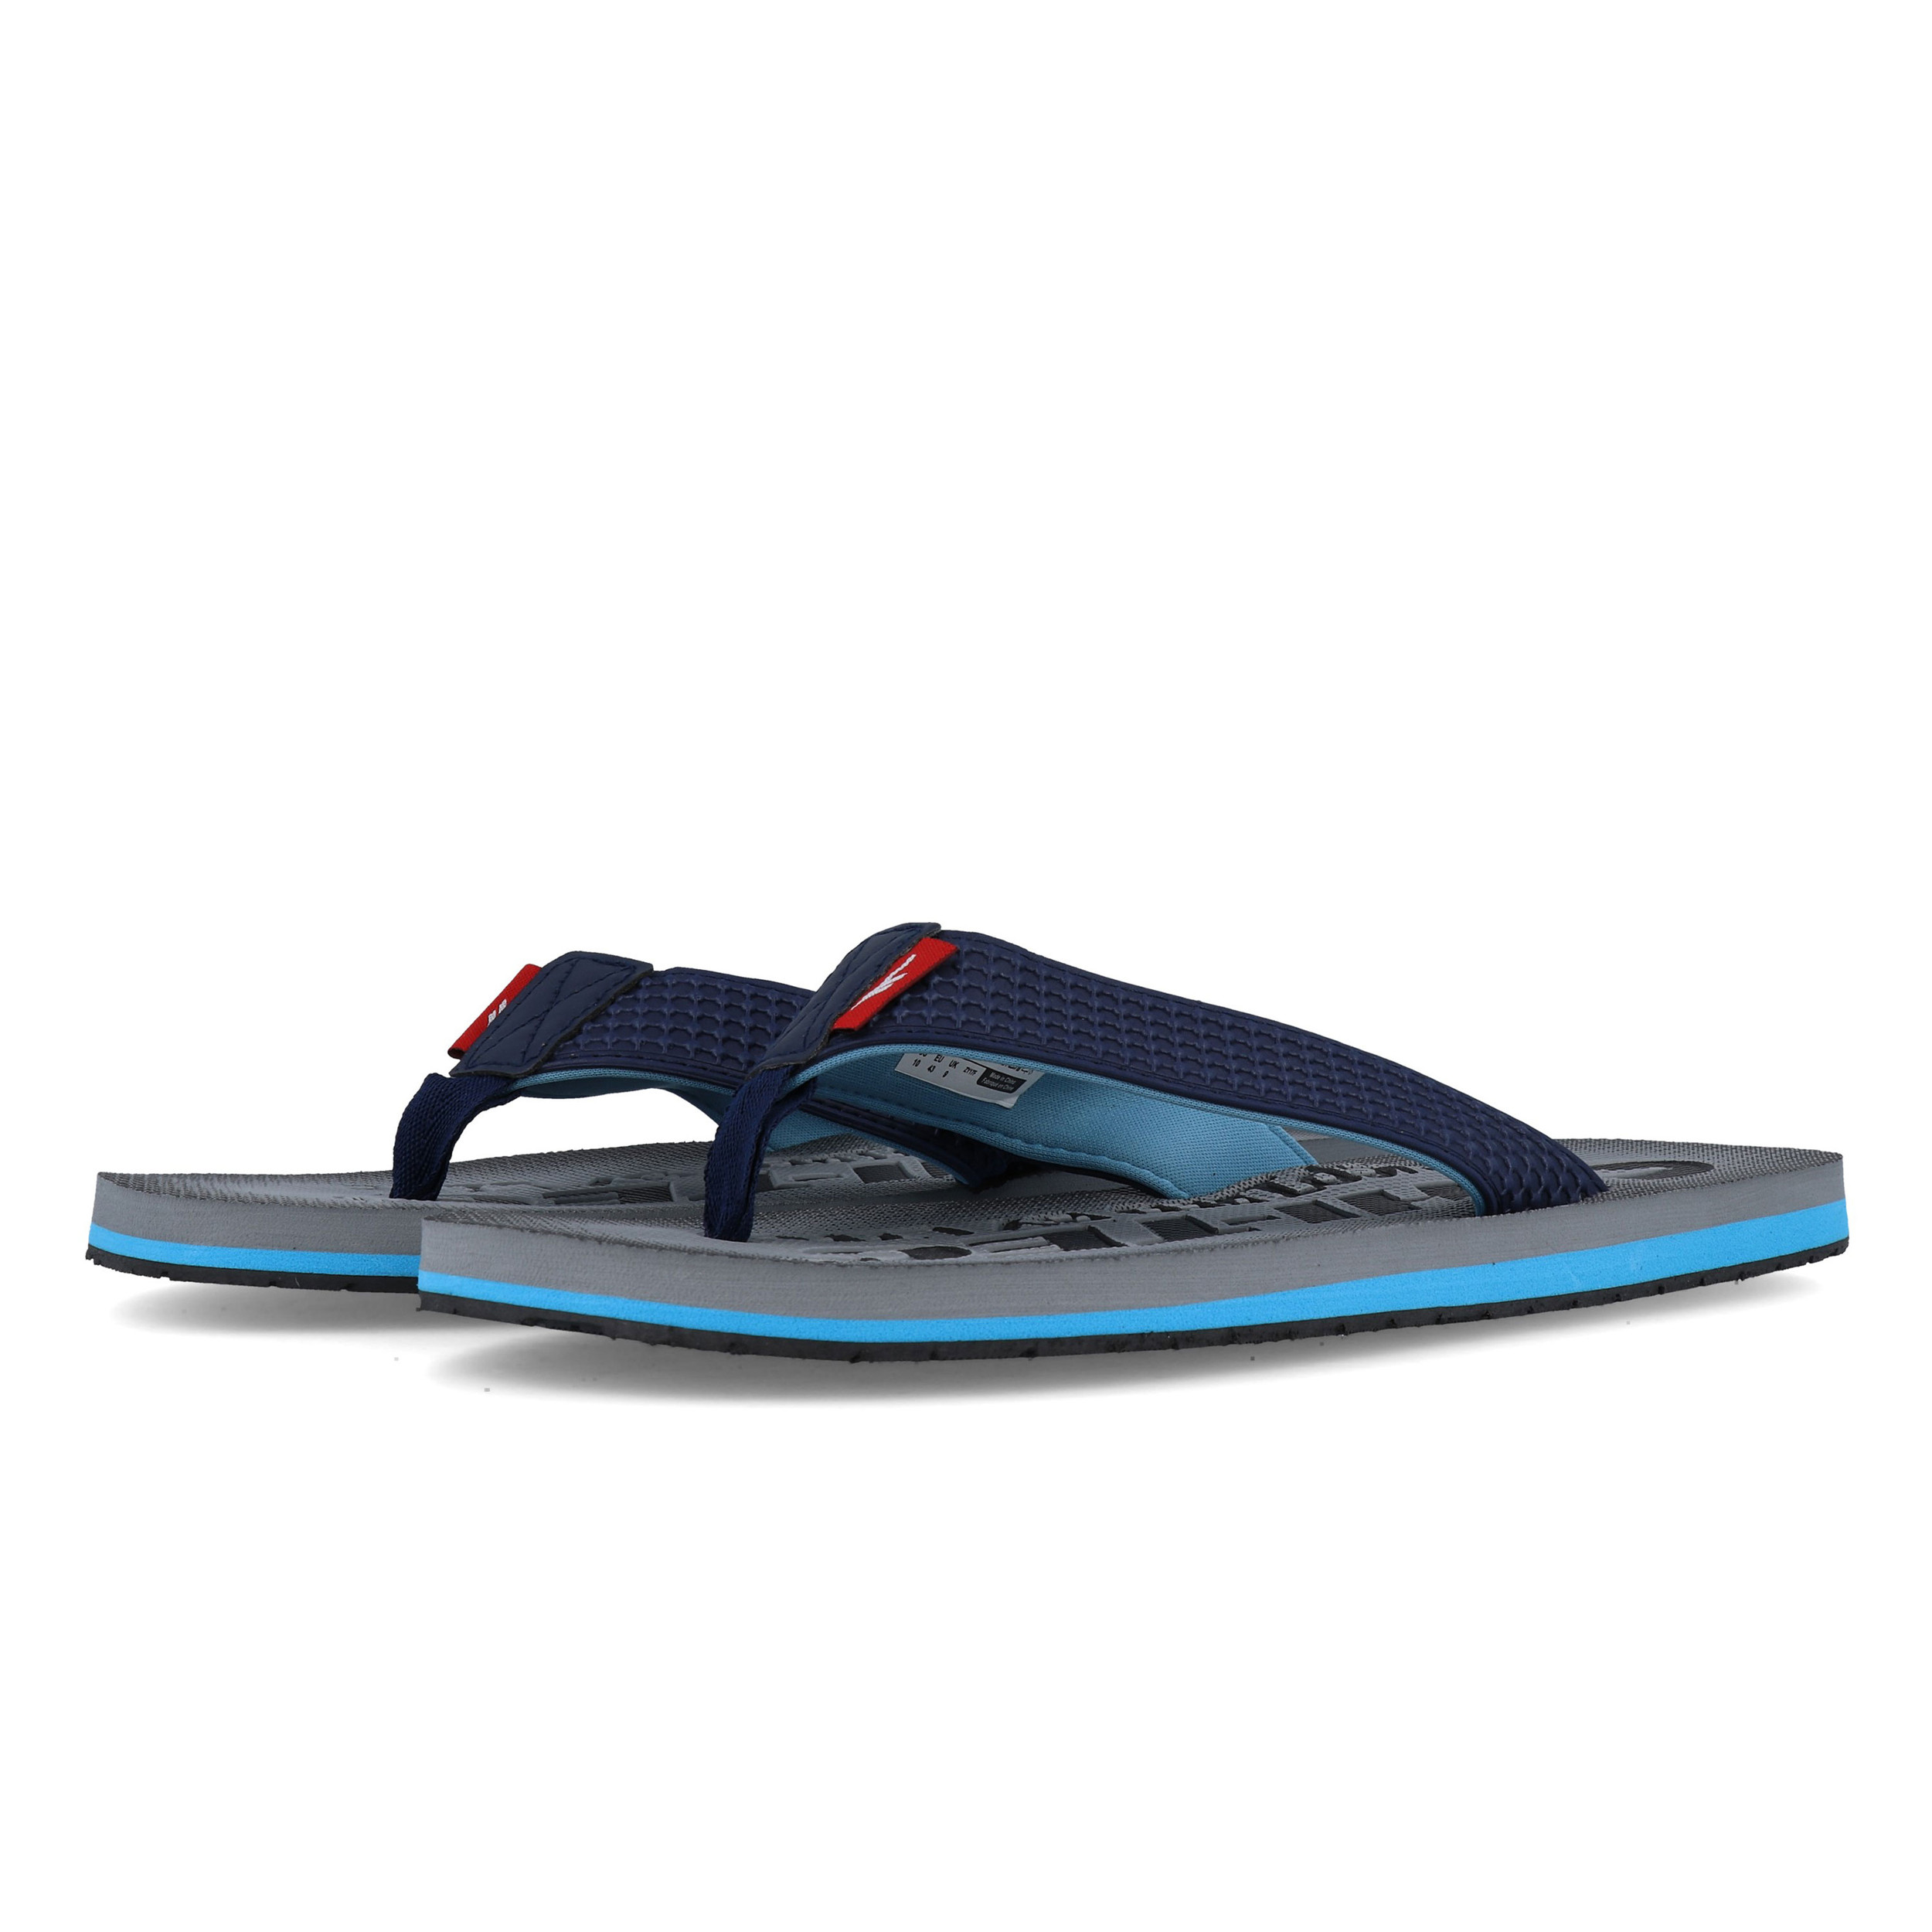 4e489884b The Shadow Thong walking sandals are the perfect balance of comfort and  practicality making them great for walking.